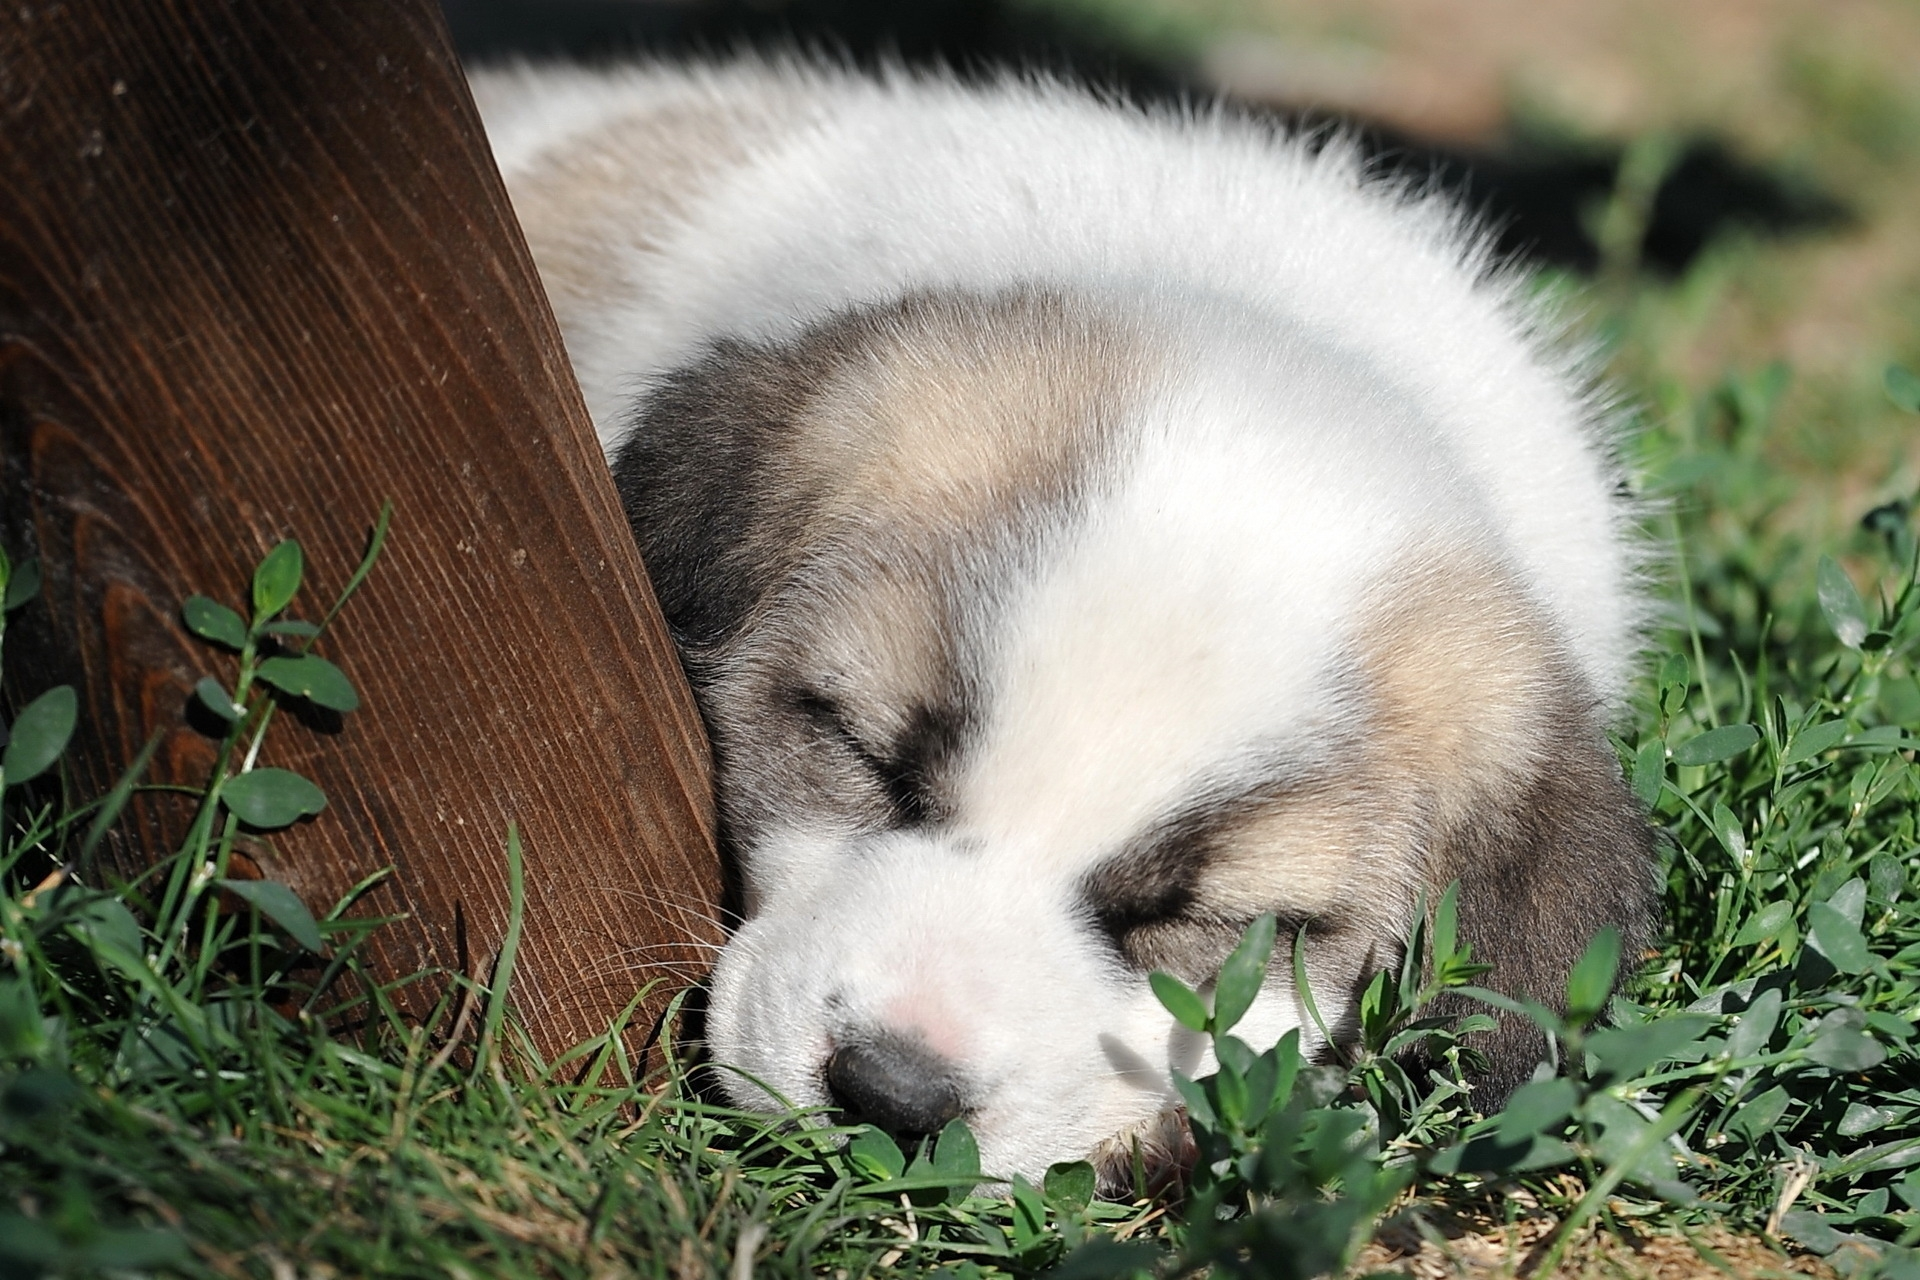 146221 download wallpaper Animals, Puppy, Grass, Muzzle, Sleep, Dream, Nice, Sweetheart screensavers and pictures for free